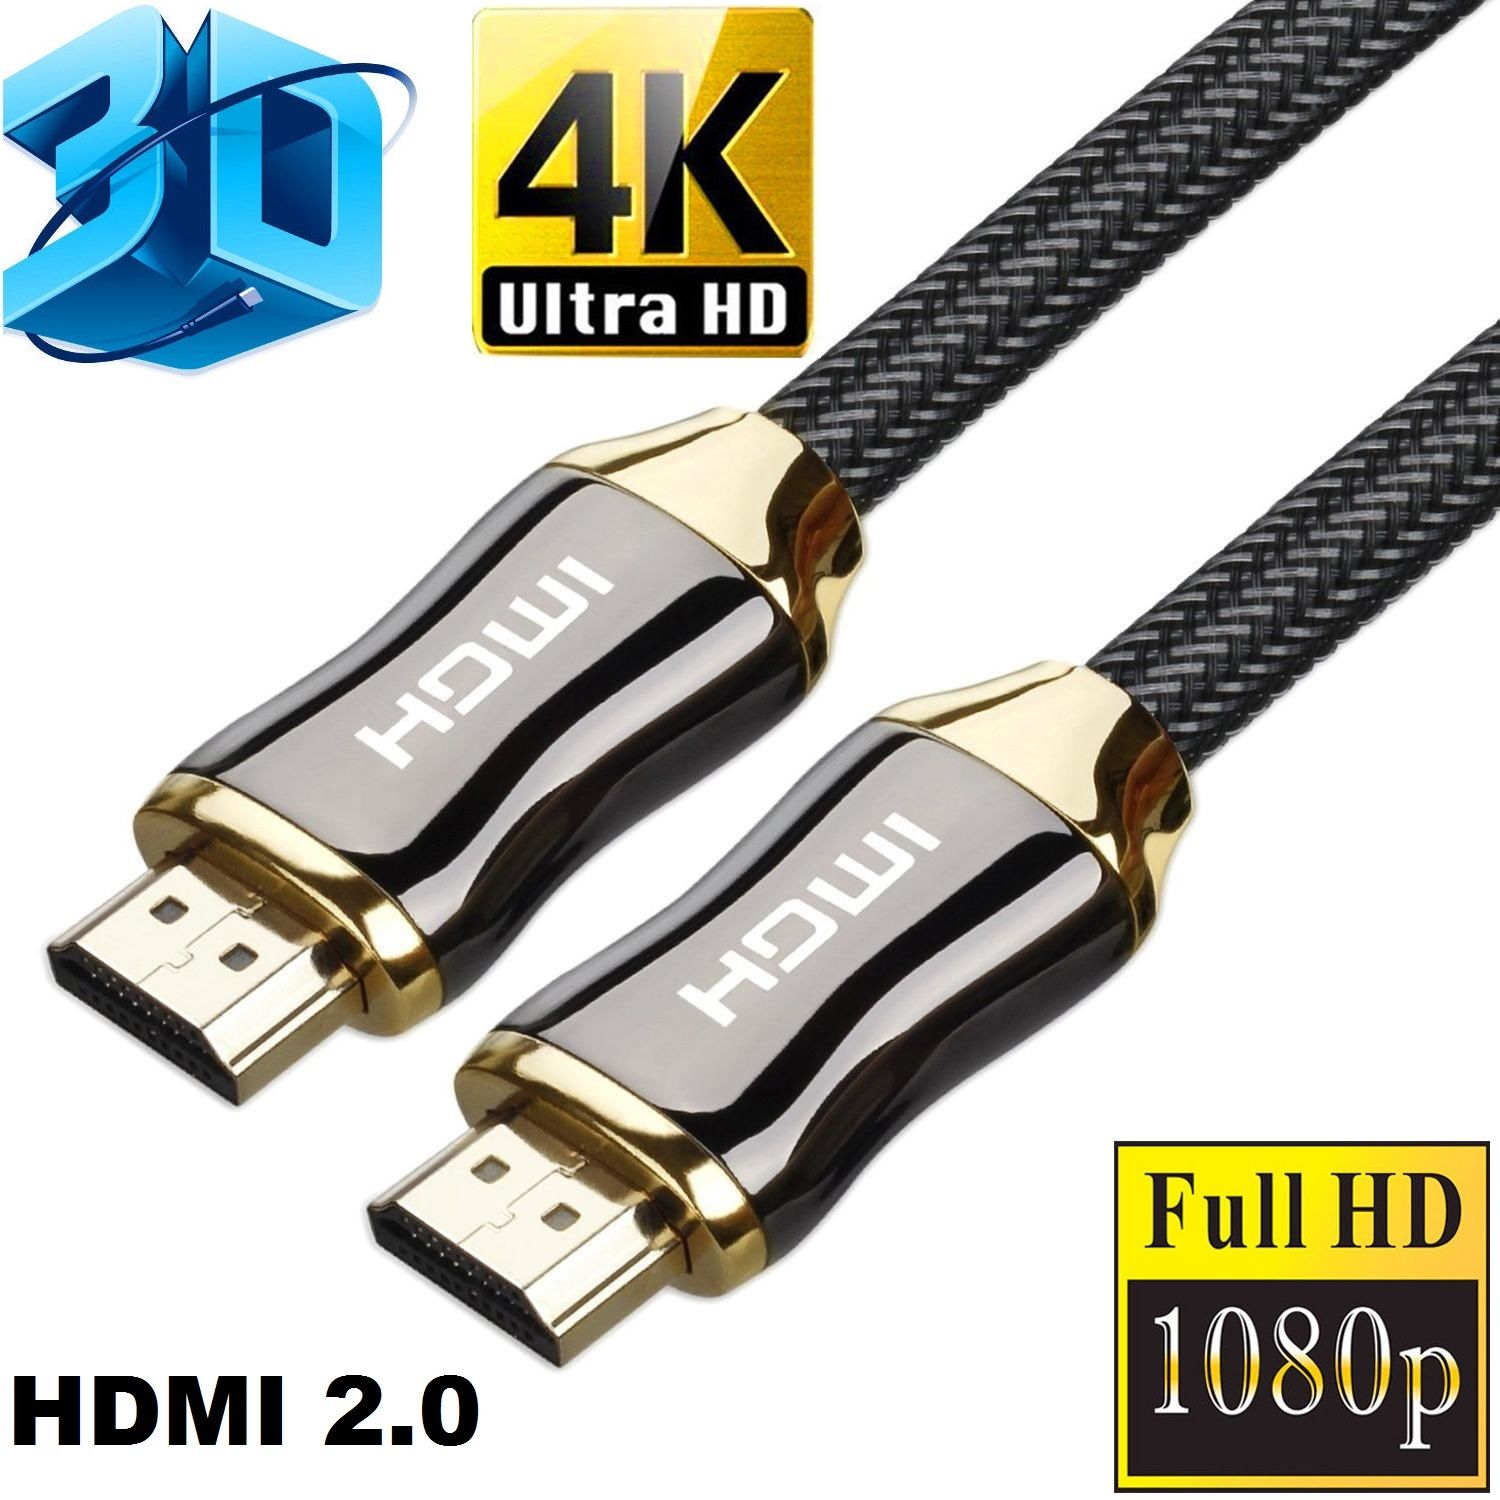 2.0 HDMI Cable ready for For PS3 PS4 PC TV Xbox ,28AWG Goldplate Braided Cord , HDMI Cable 4K 6ft